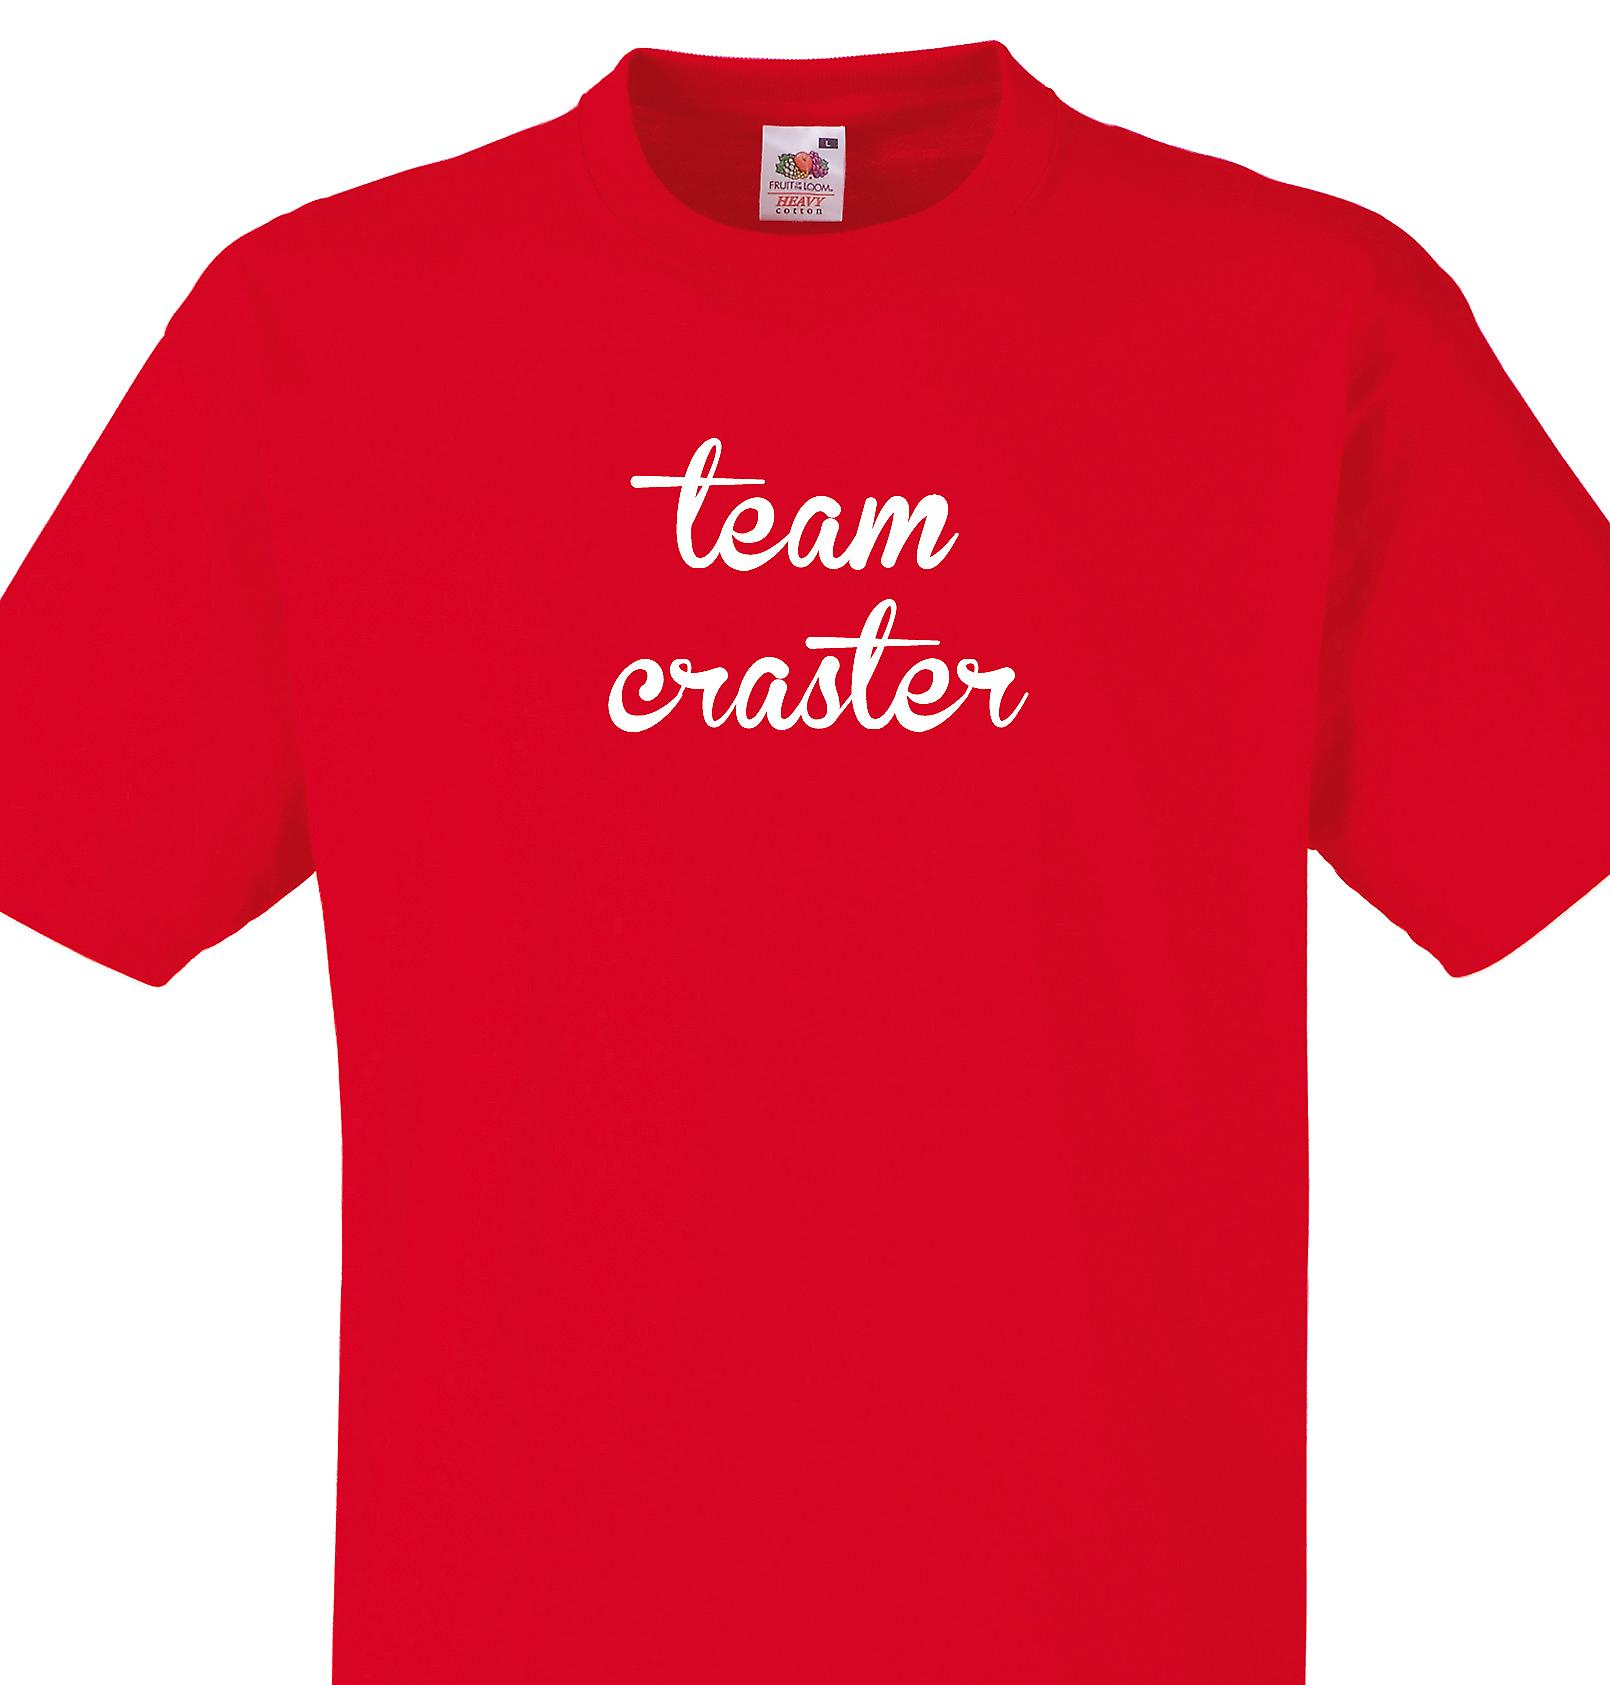 Team Craster Red T shirt